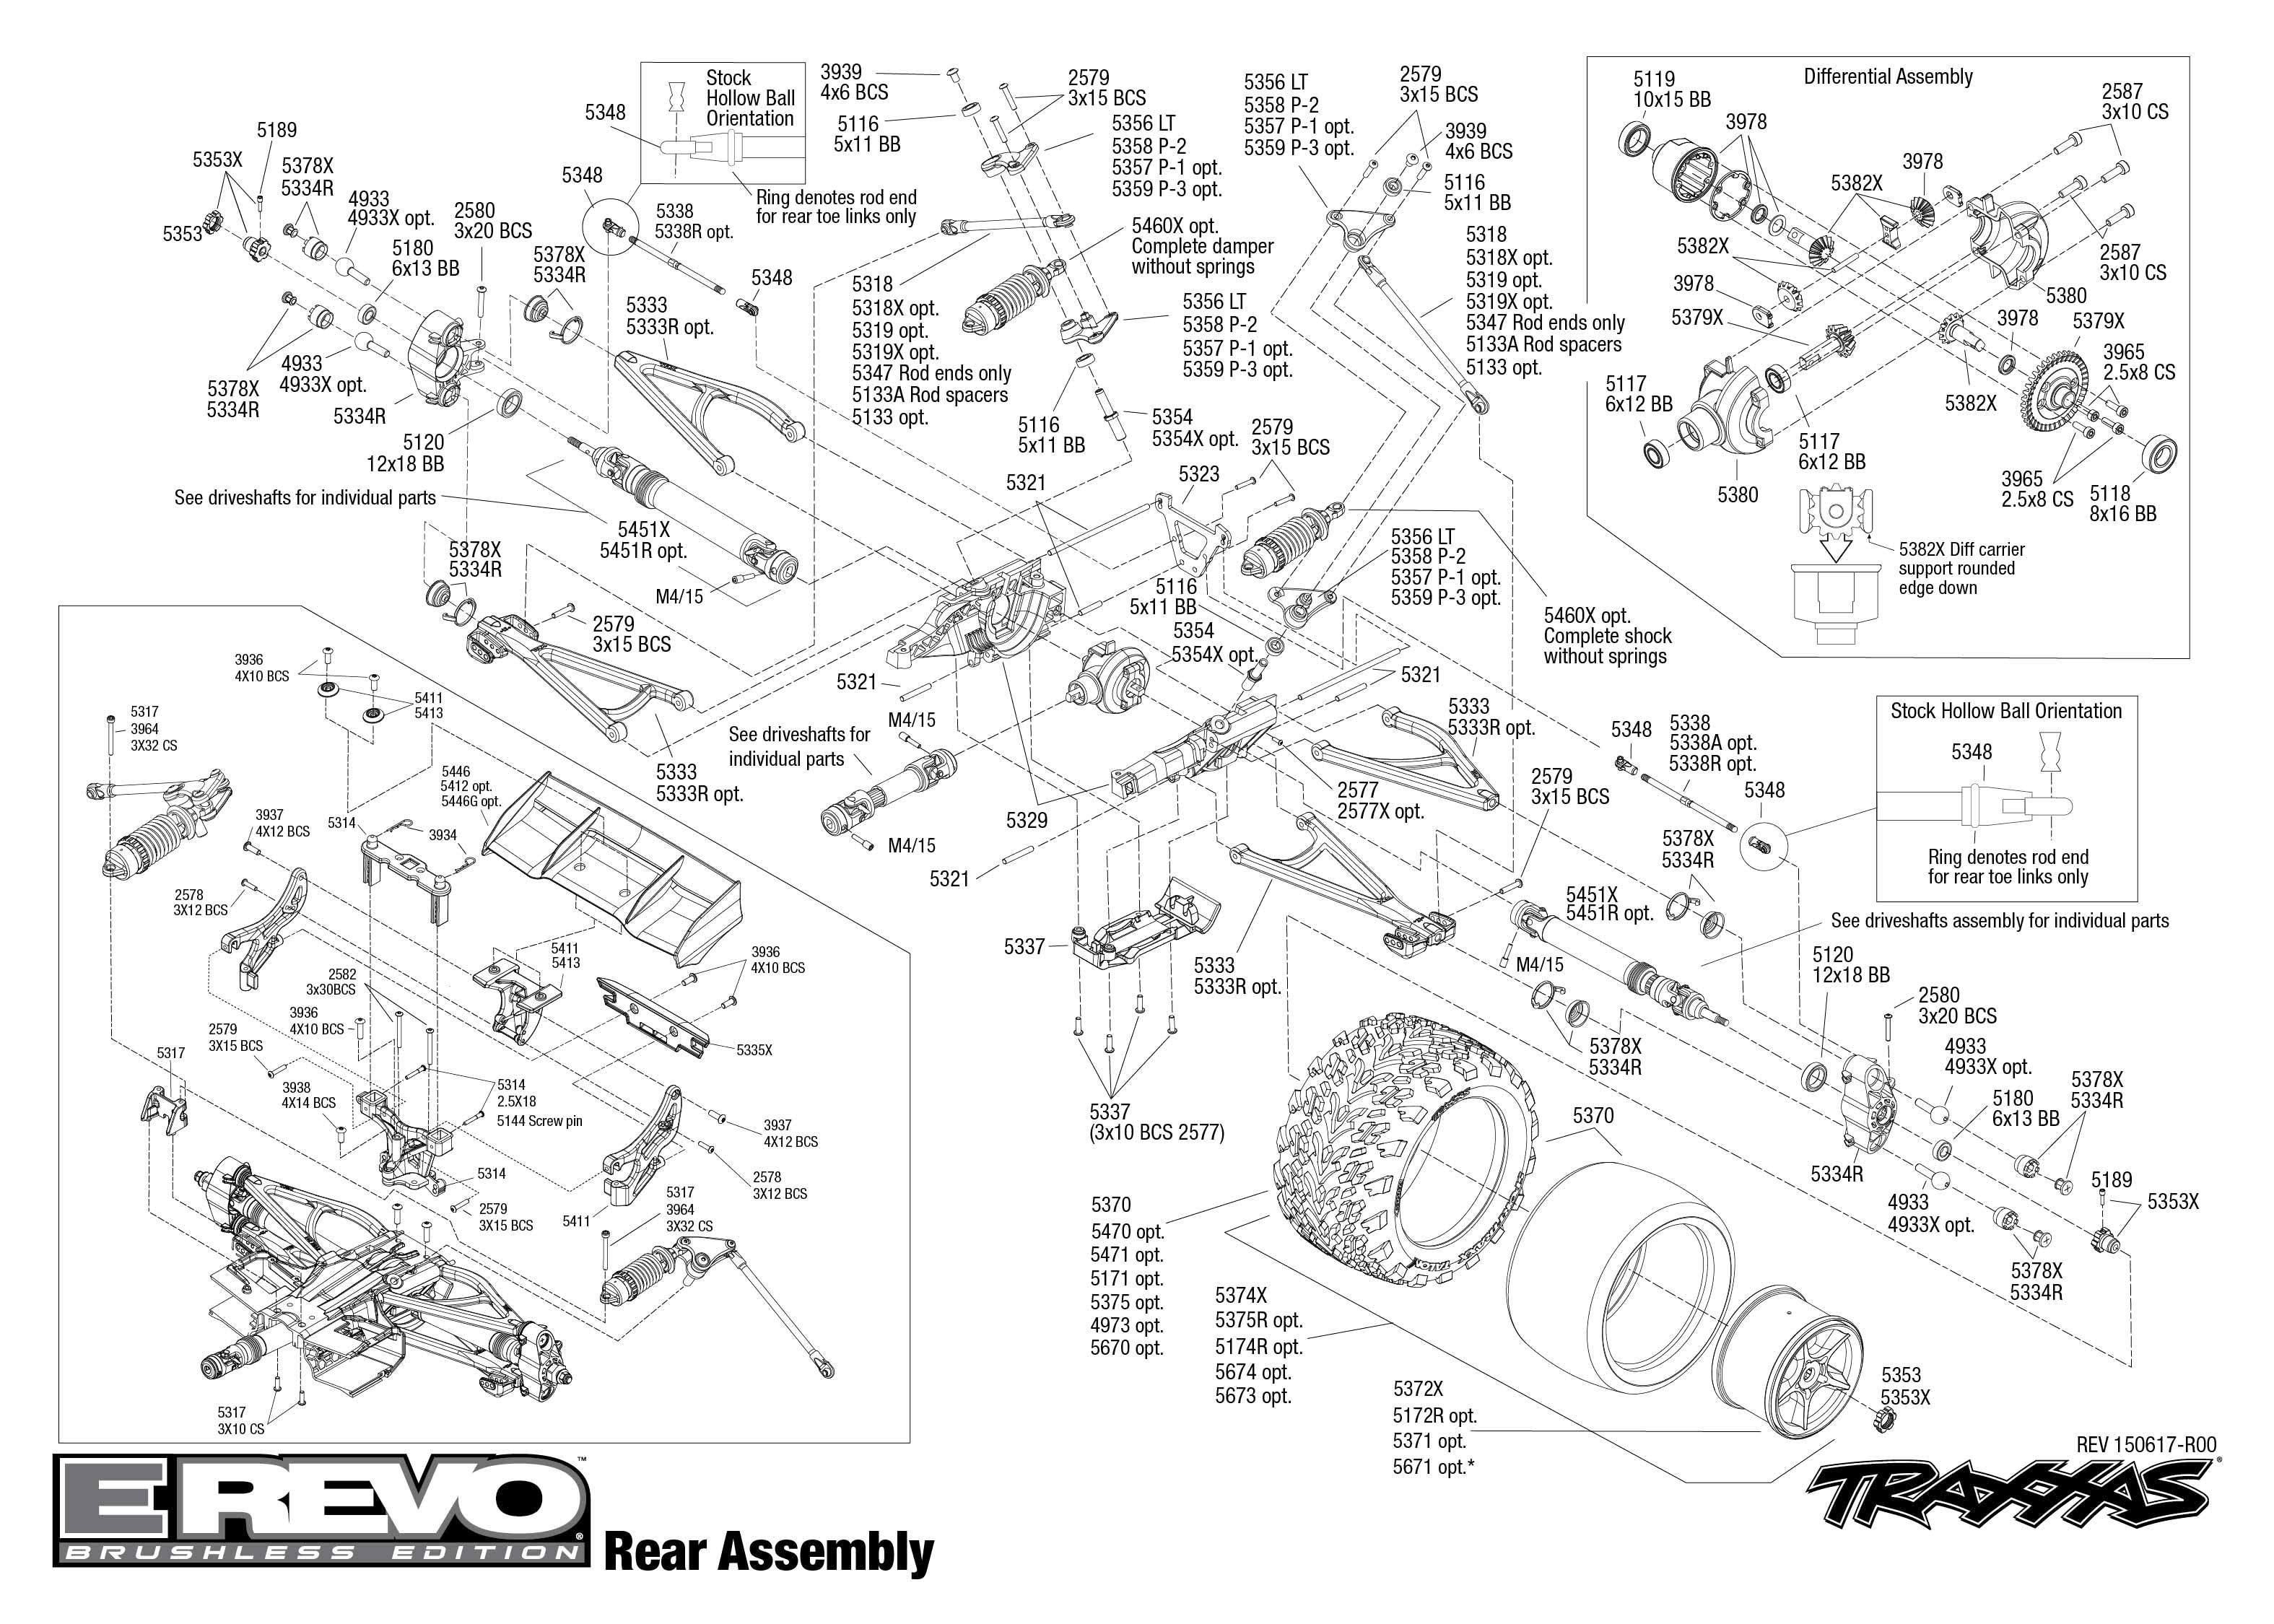 Wonderful traxxas grave digger parts diagram photos best image exciting traxxas stede 4x4 parts diagram pictures best image pooptronica Images